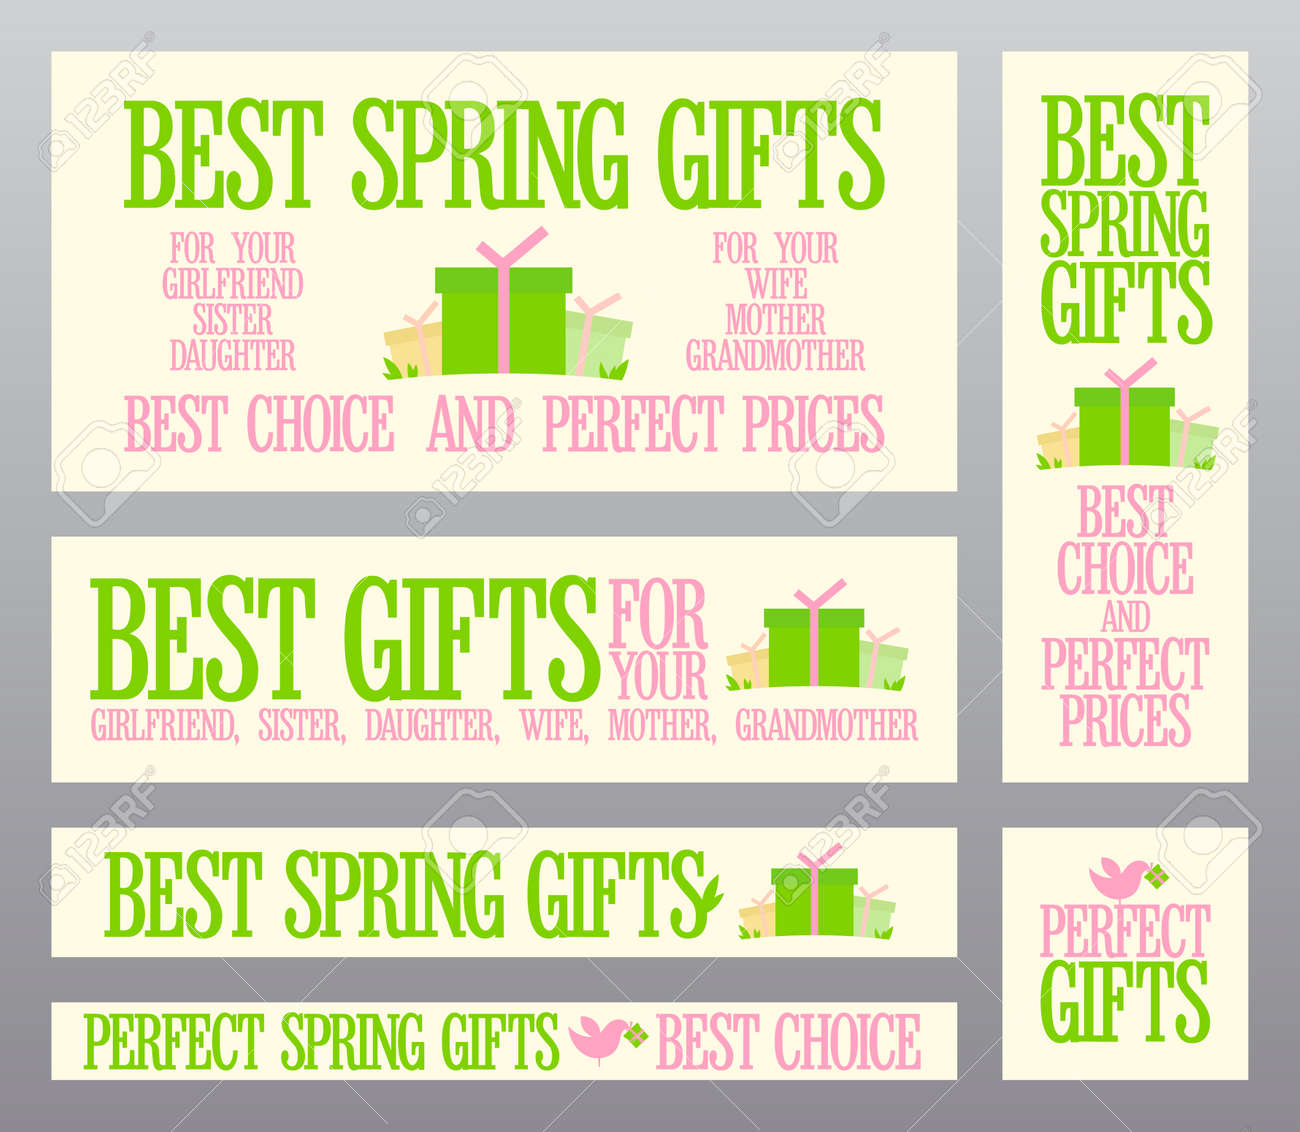 Best Spring gifts banners set. Stock Vector - 25961100